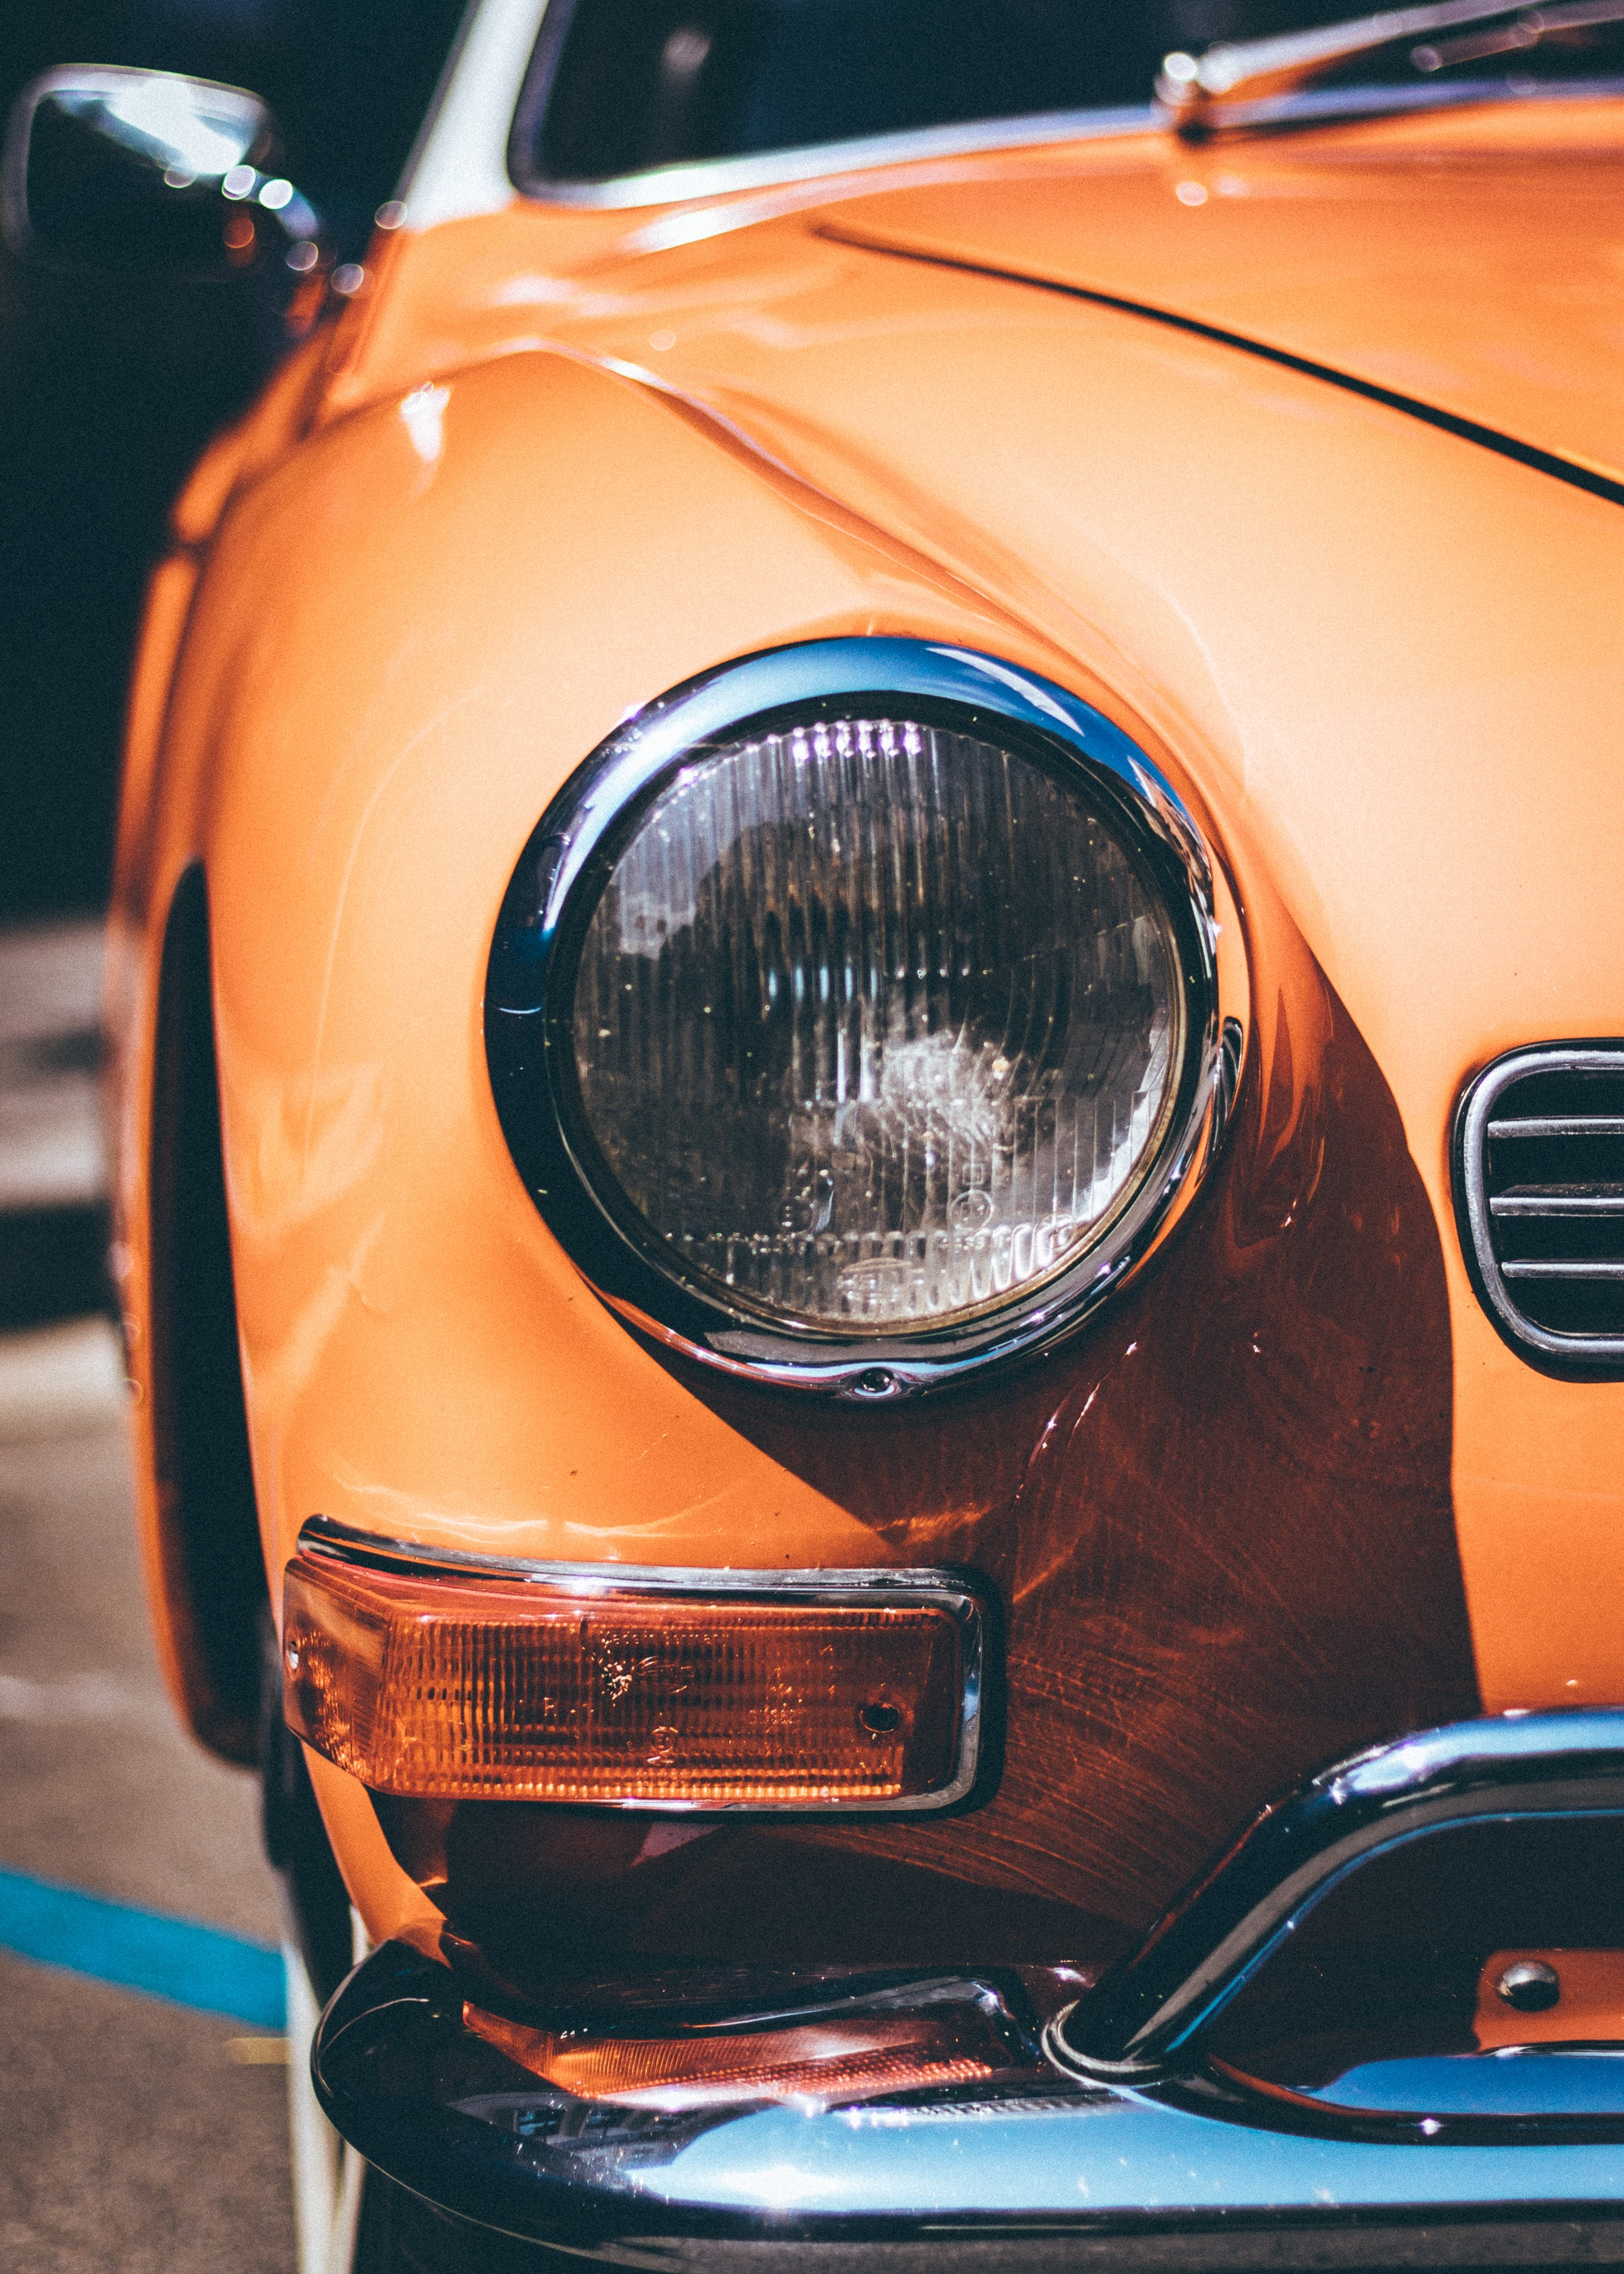 1000+ Beautiful Vintage Car Photos Pexels · Free Stock Photos